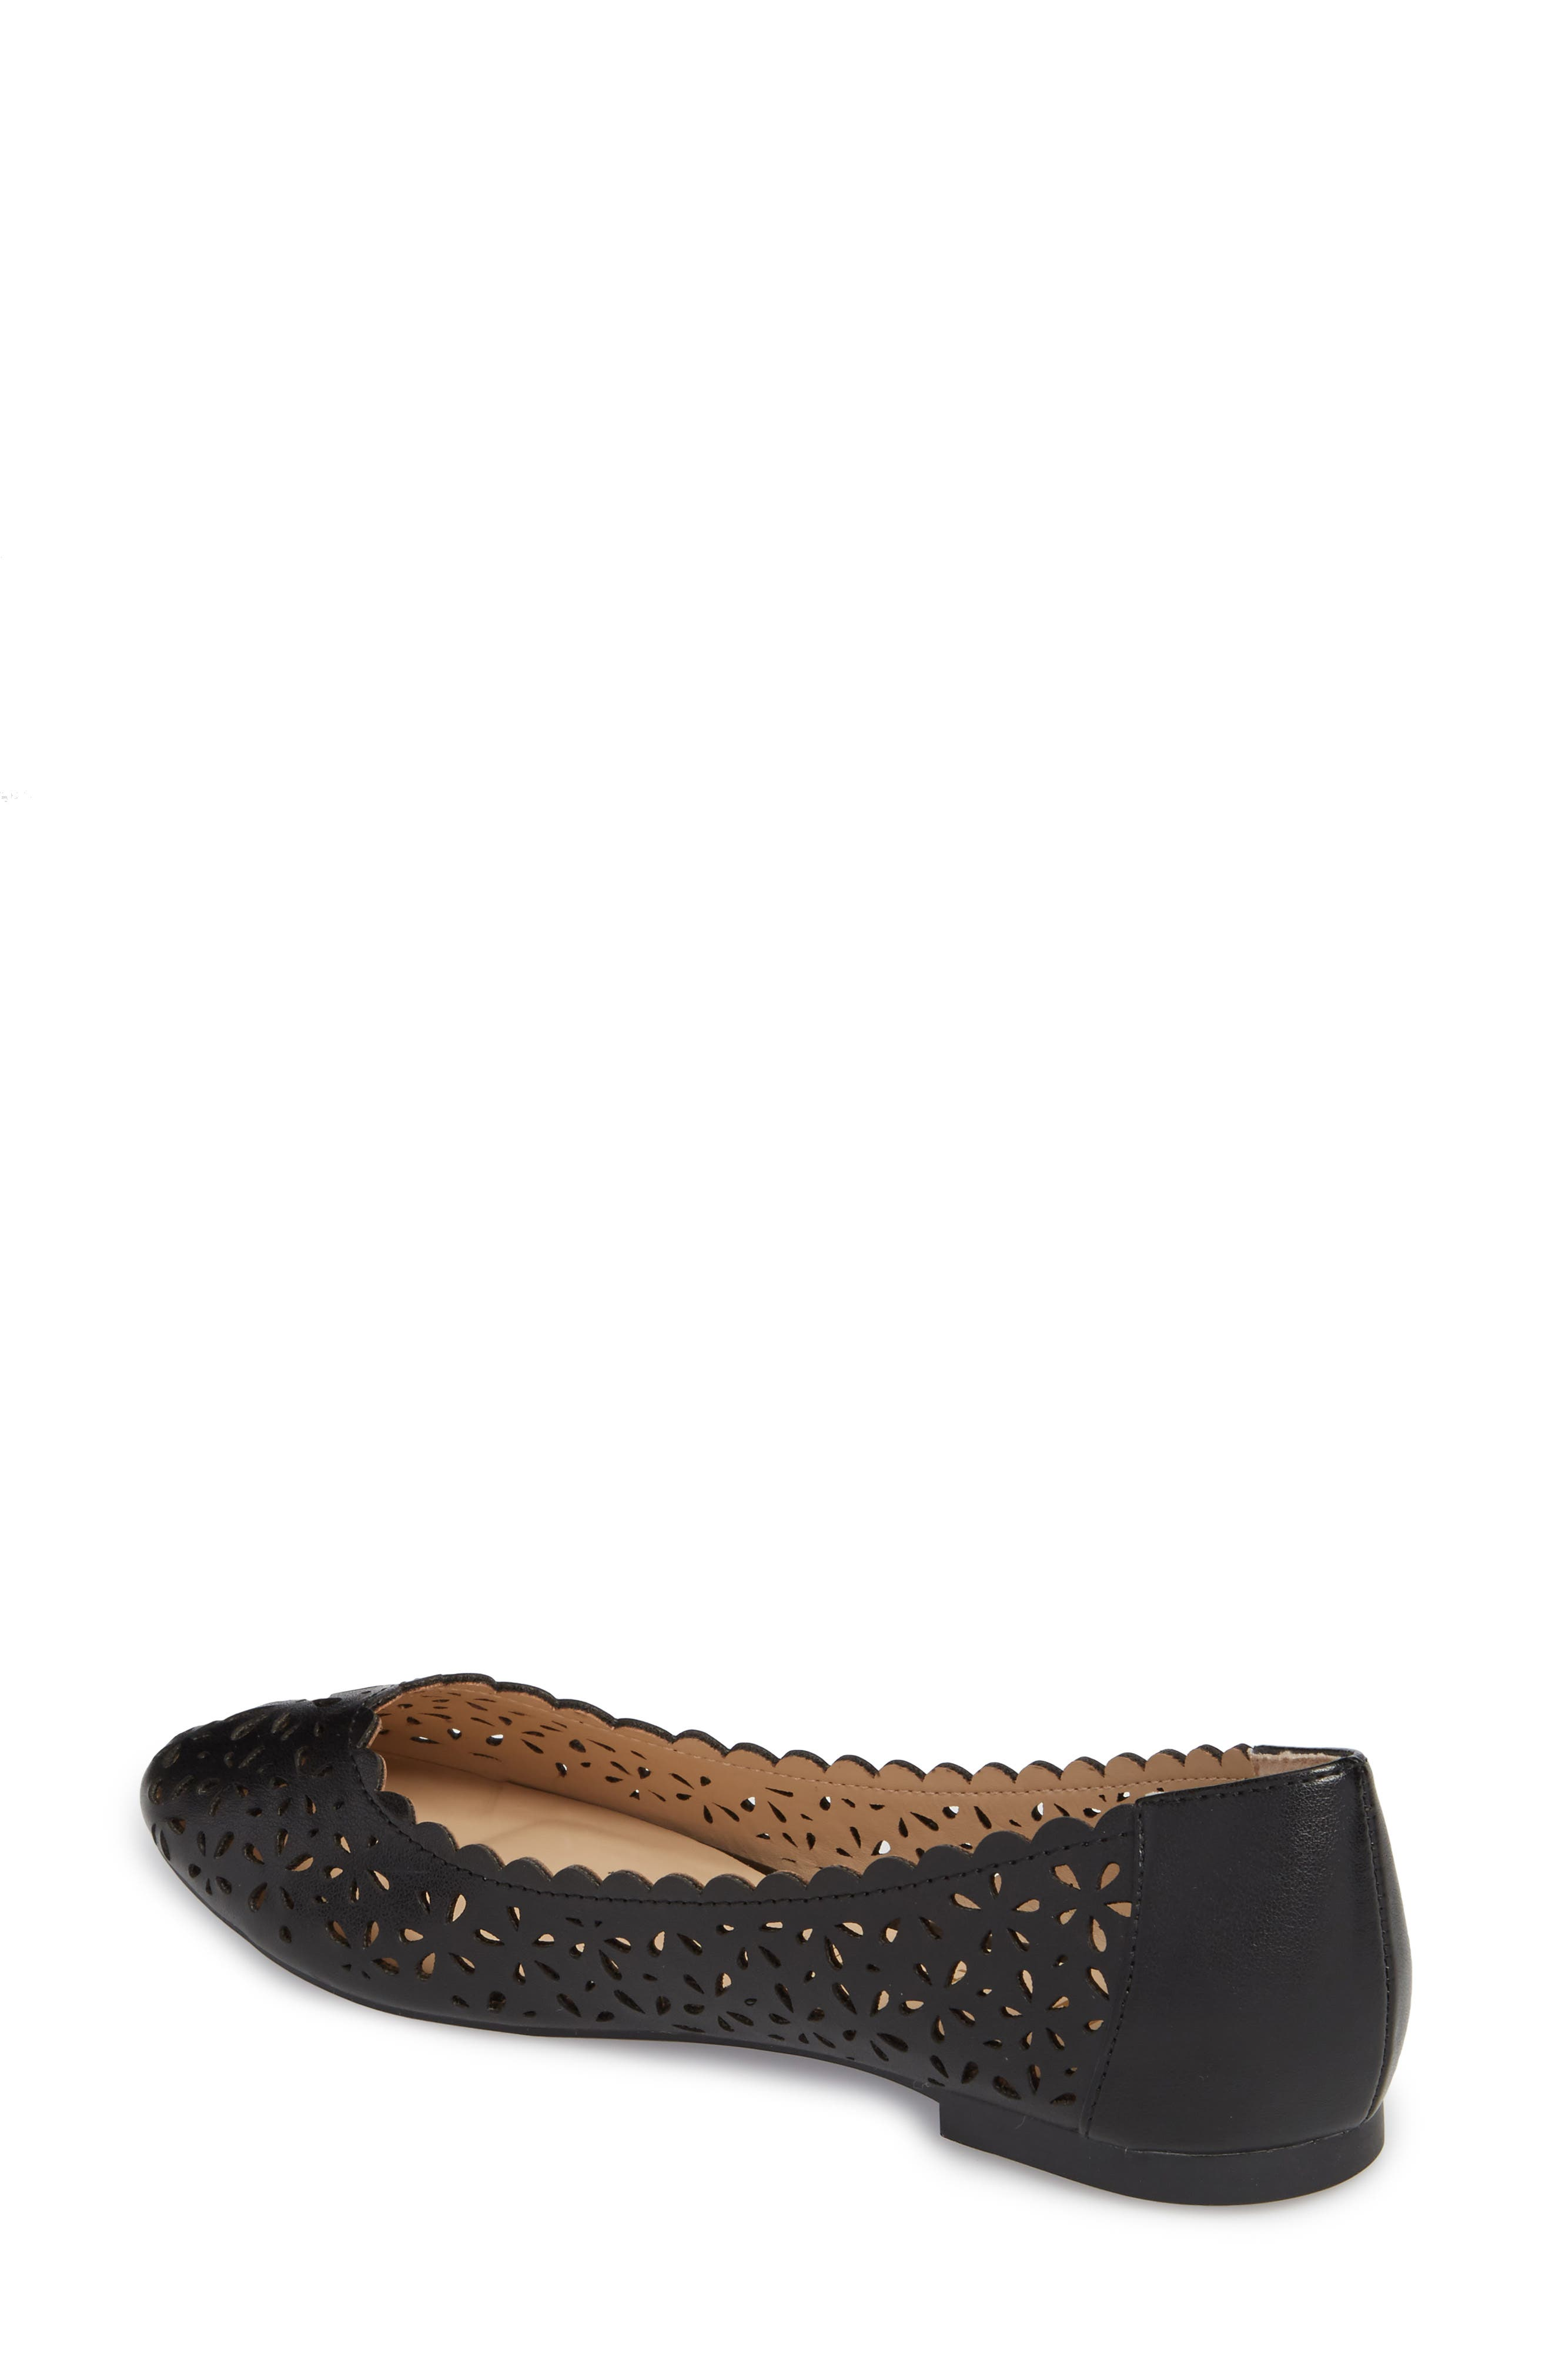 Annora Perforated Flat,                             Alternate thumbnail 2, color,                             001